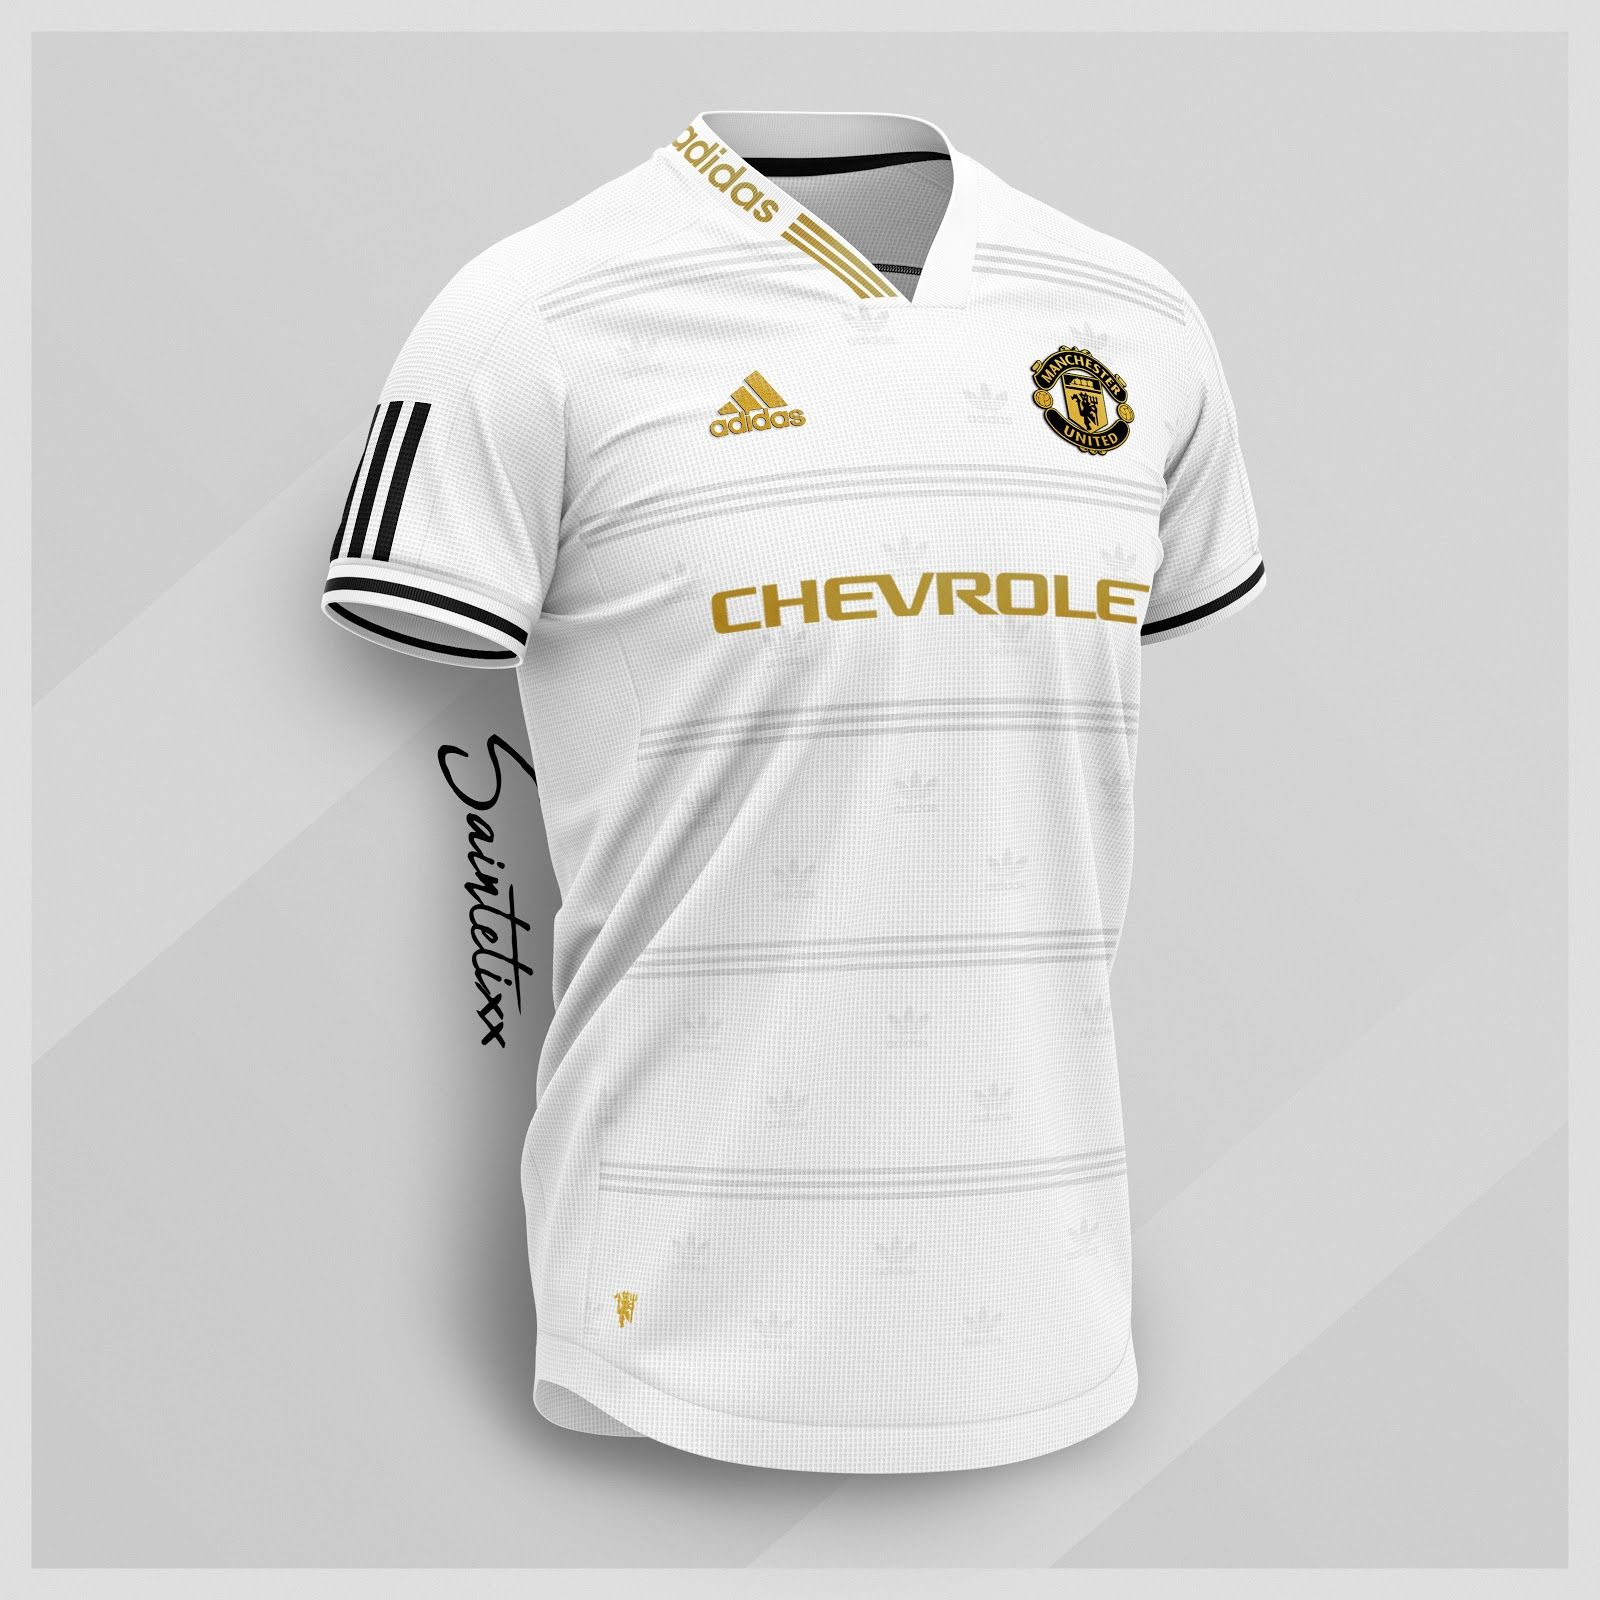 Exceptional Adidas Manchester United Home Away Third Kit Concepts By Saintetixx Footy Headlines Manchester United Football Jersey Outfit Jersey Design